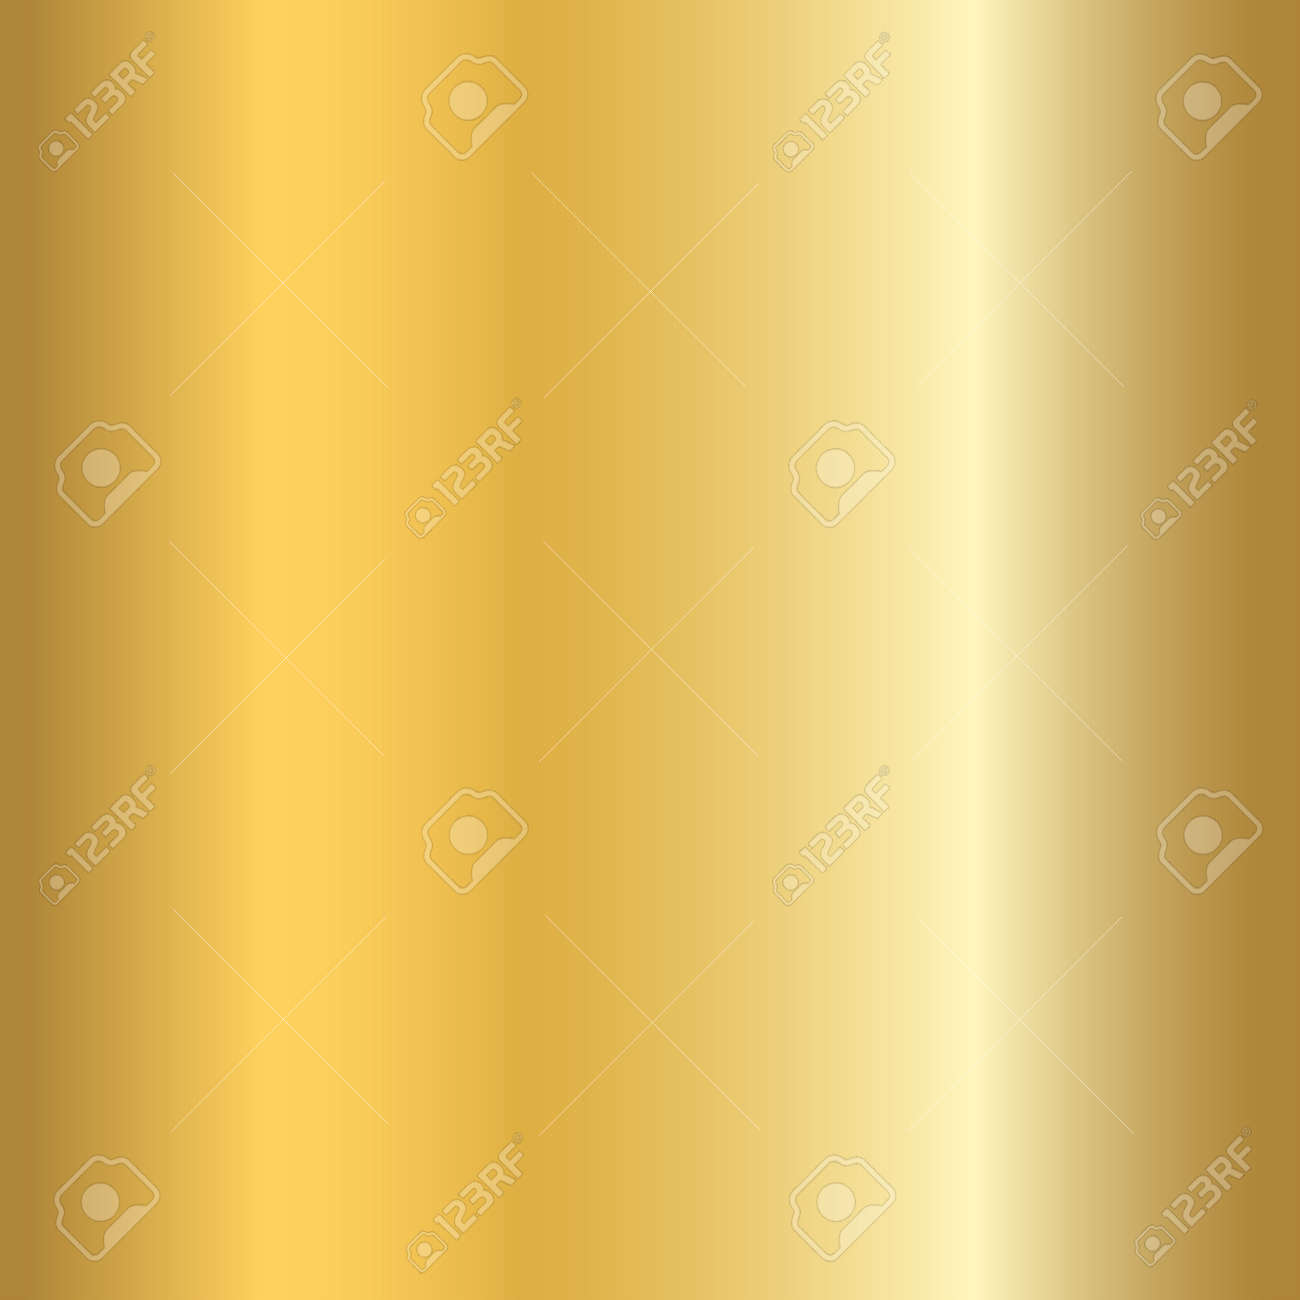 Gold texture seamless pattern. Light realistic, shiny, metallic empty golden gradient template. Abstract metal decoration. Design for wallpaper, background, wrapping, fabric etc. Vector Illustration. - 54127064